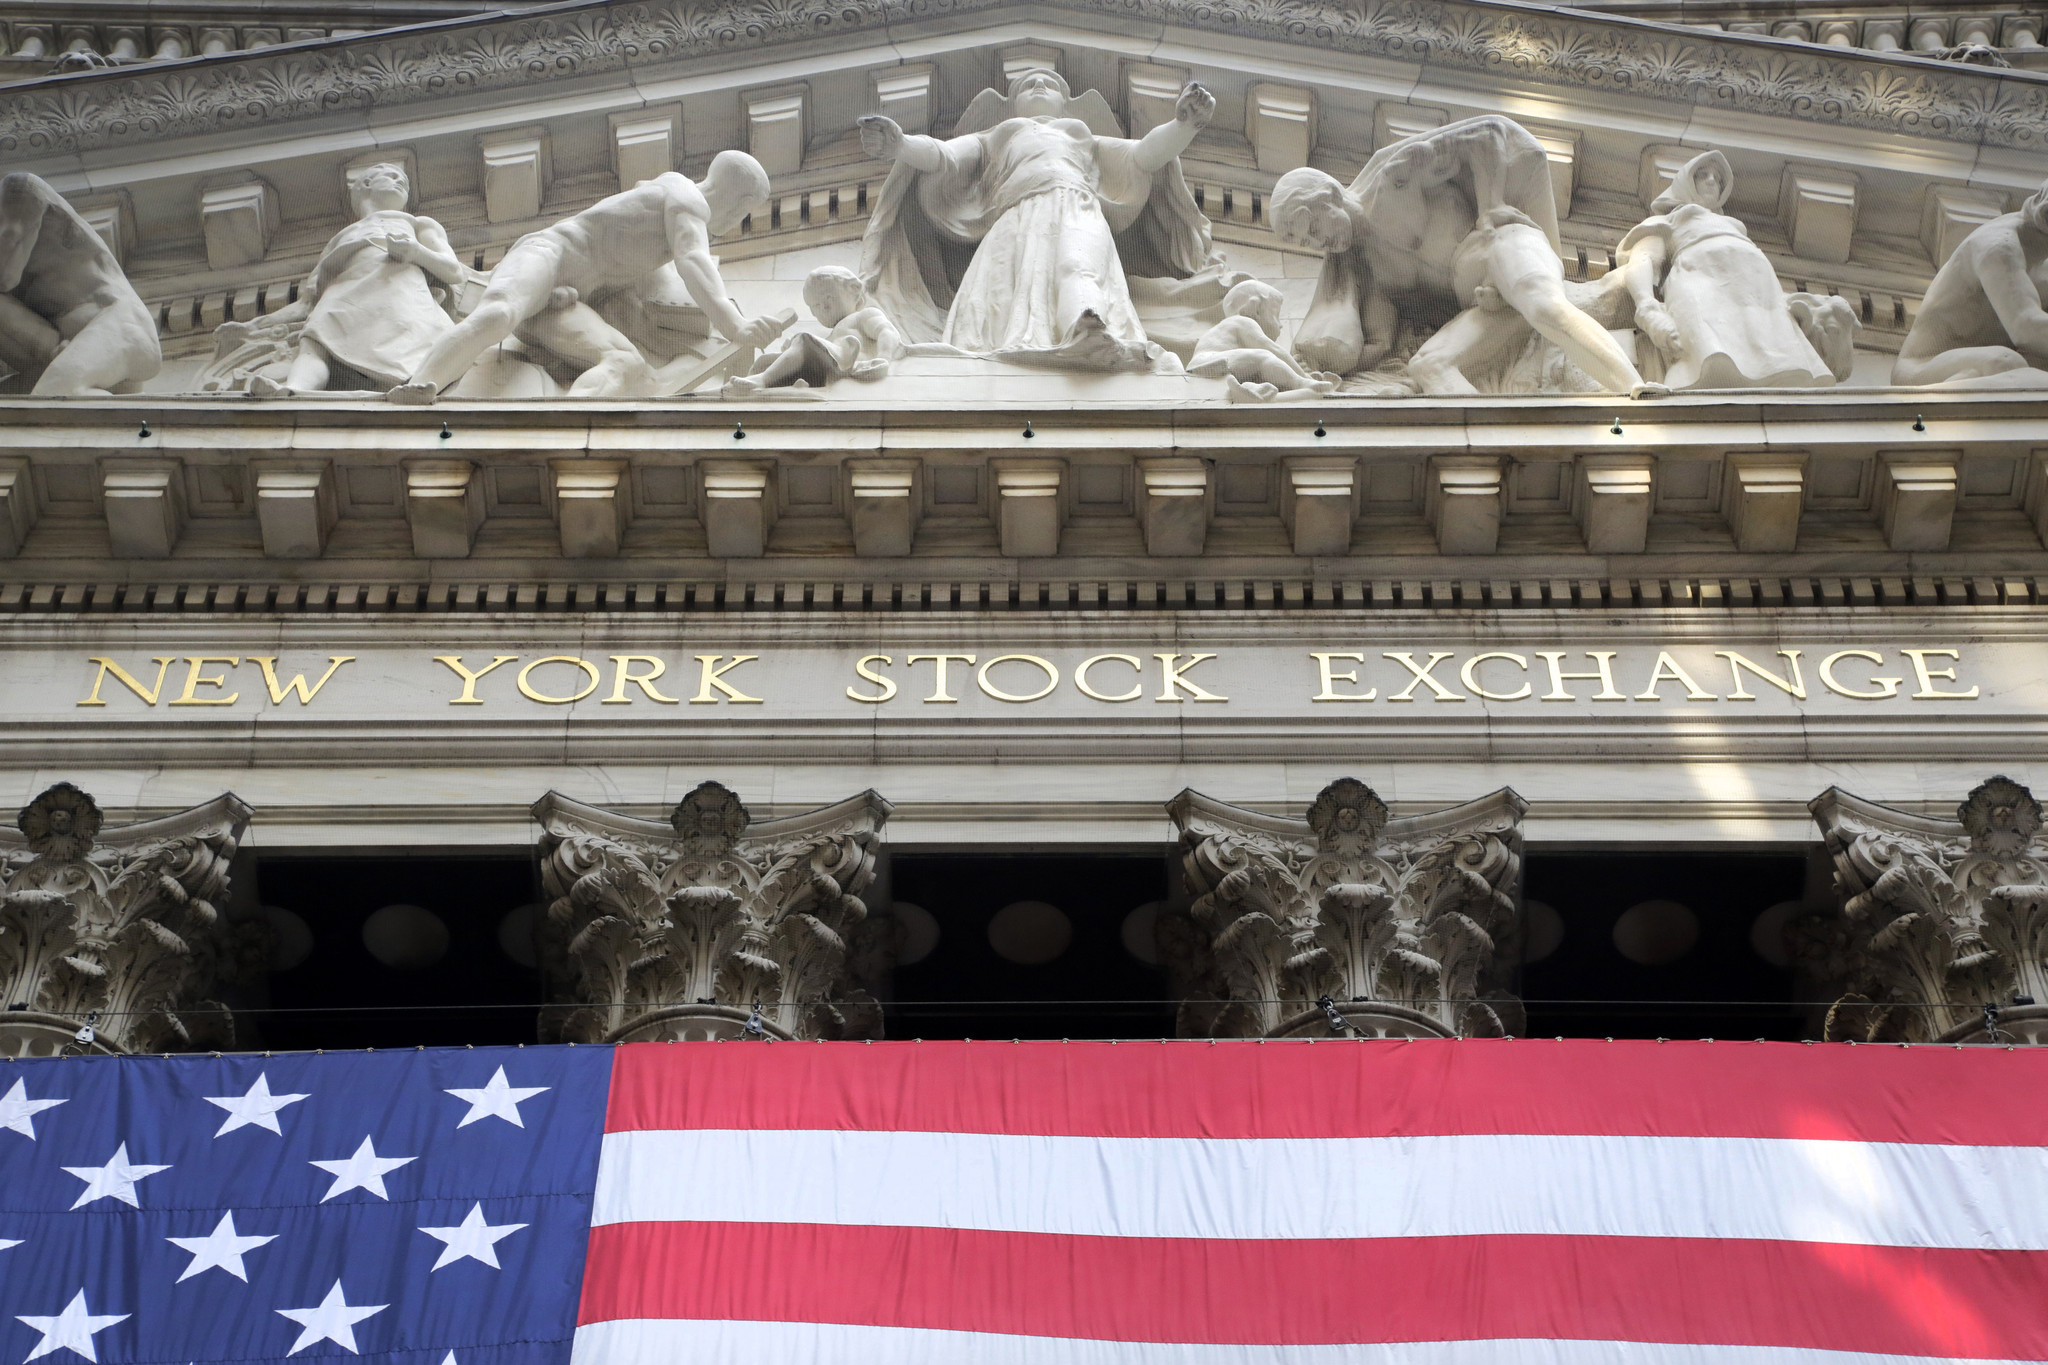 The feds say they're finally going to go after bad guys on Wall Street